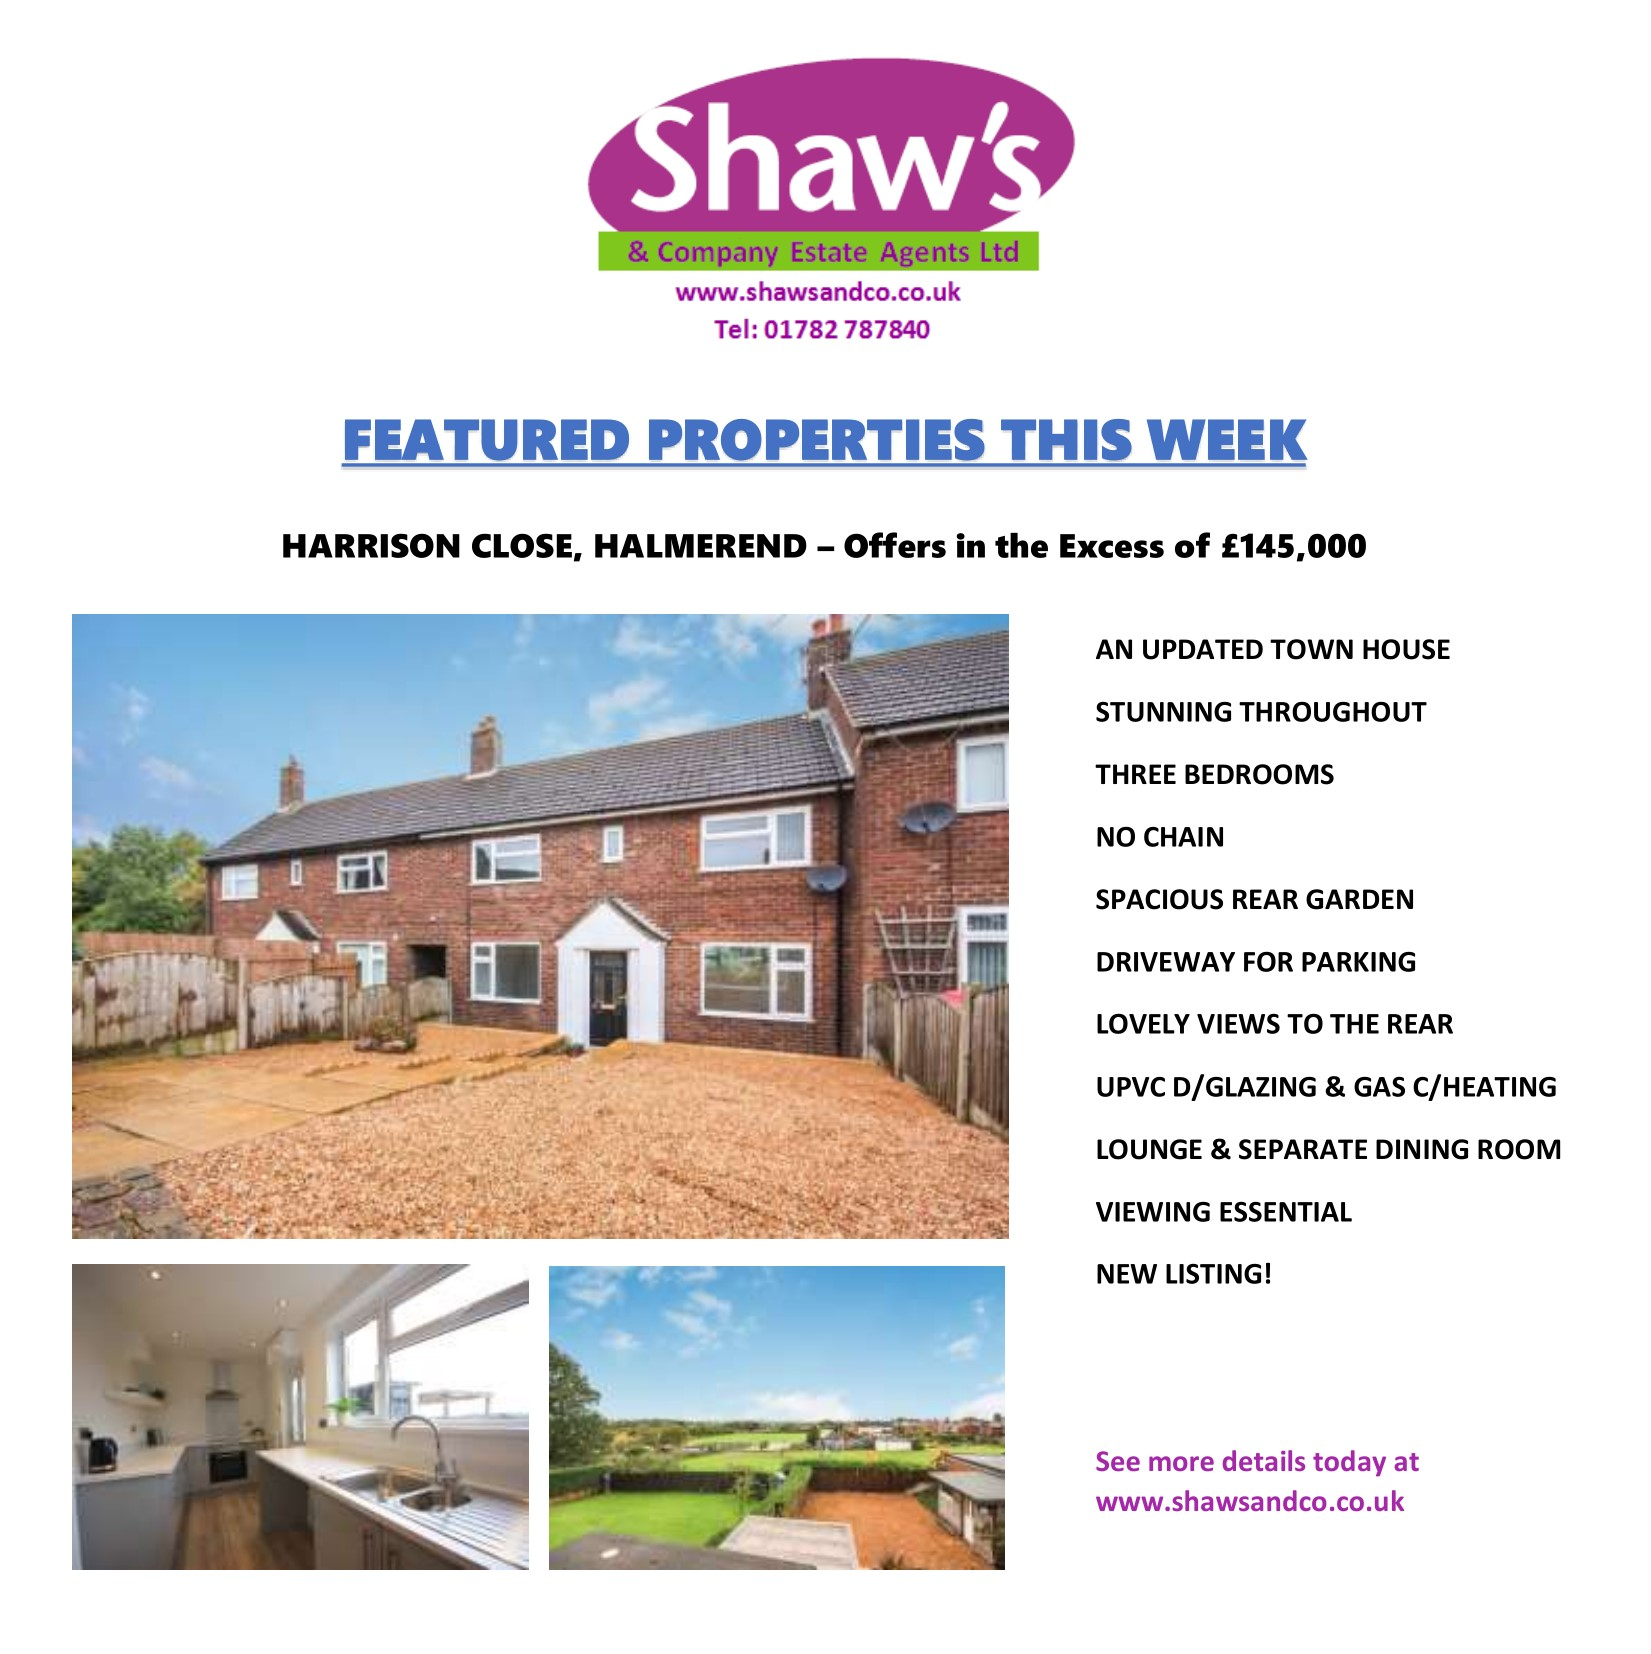 NEW & FEATURED PROPERTIES THIS WEEK!